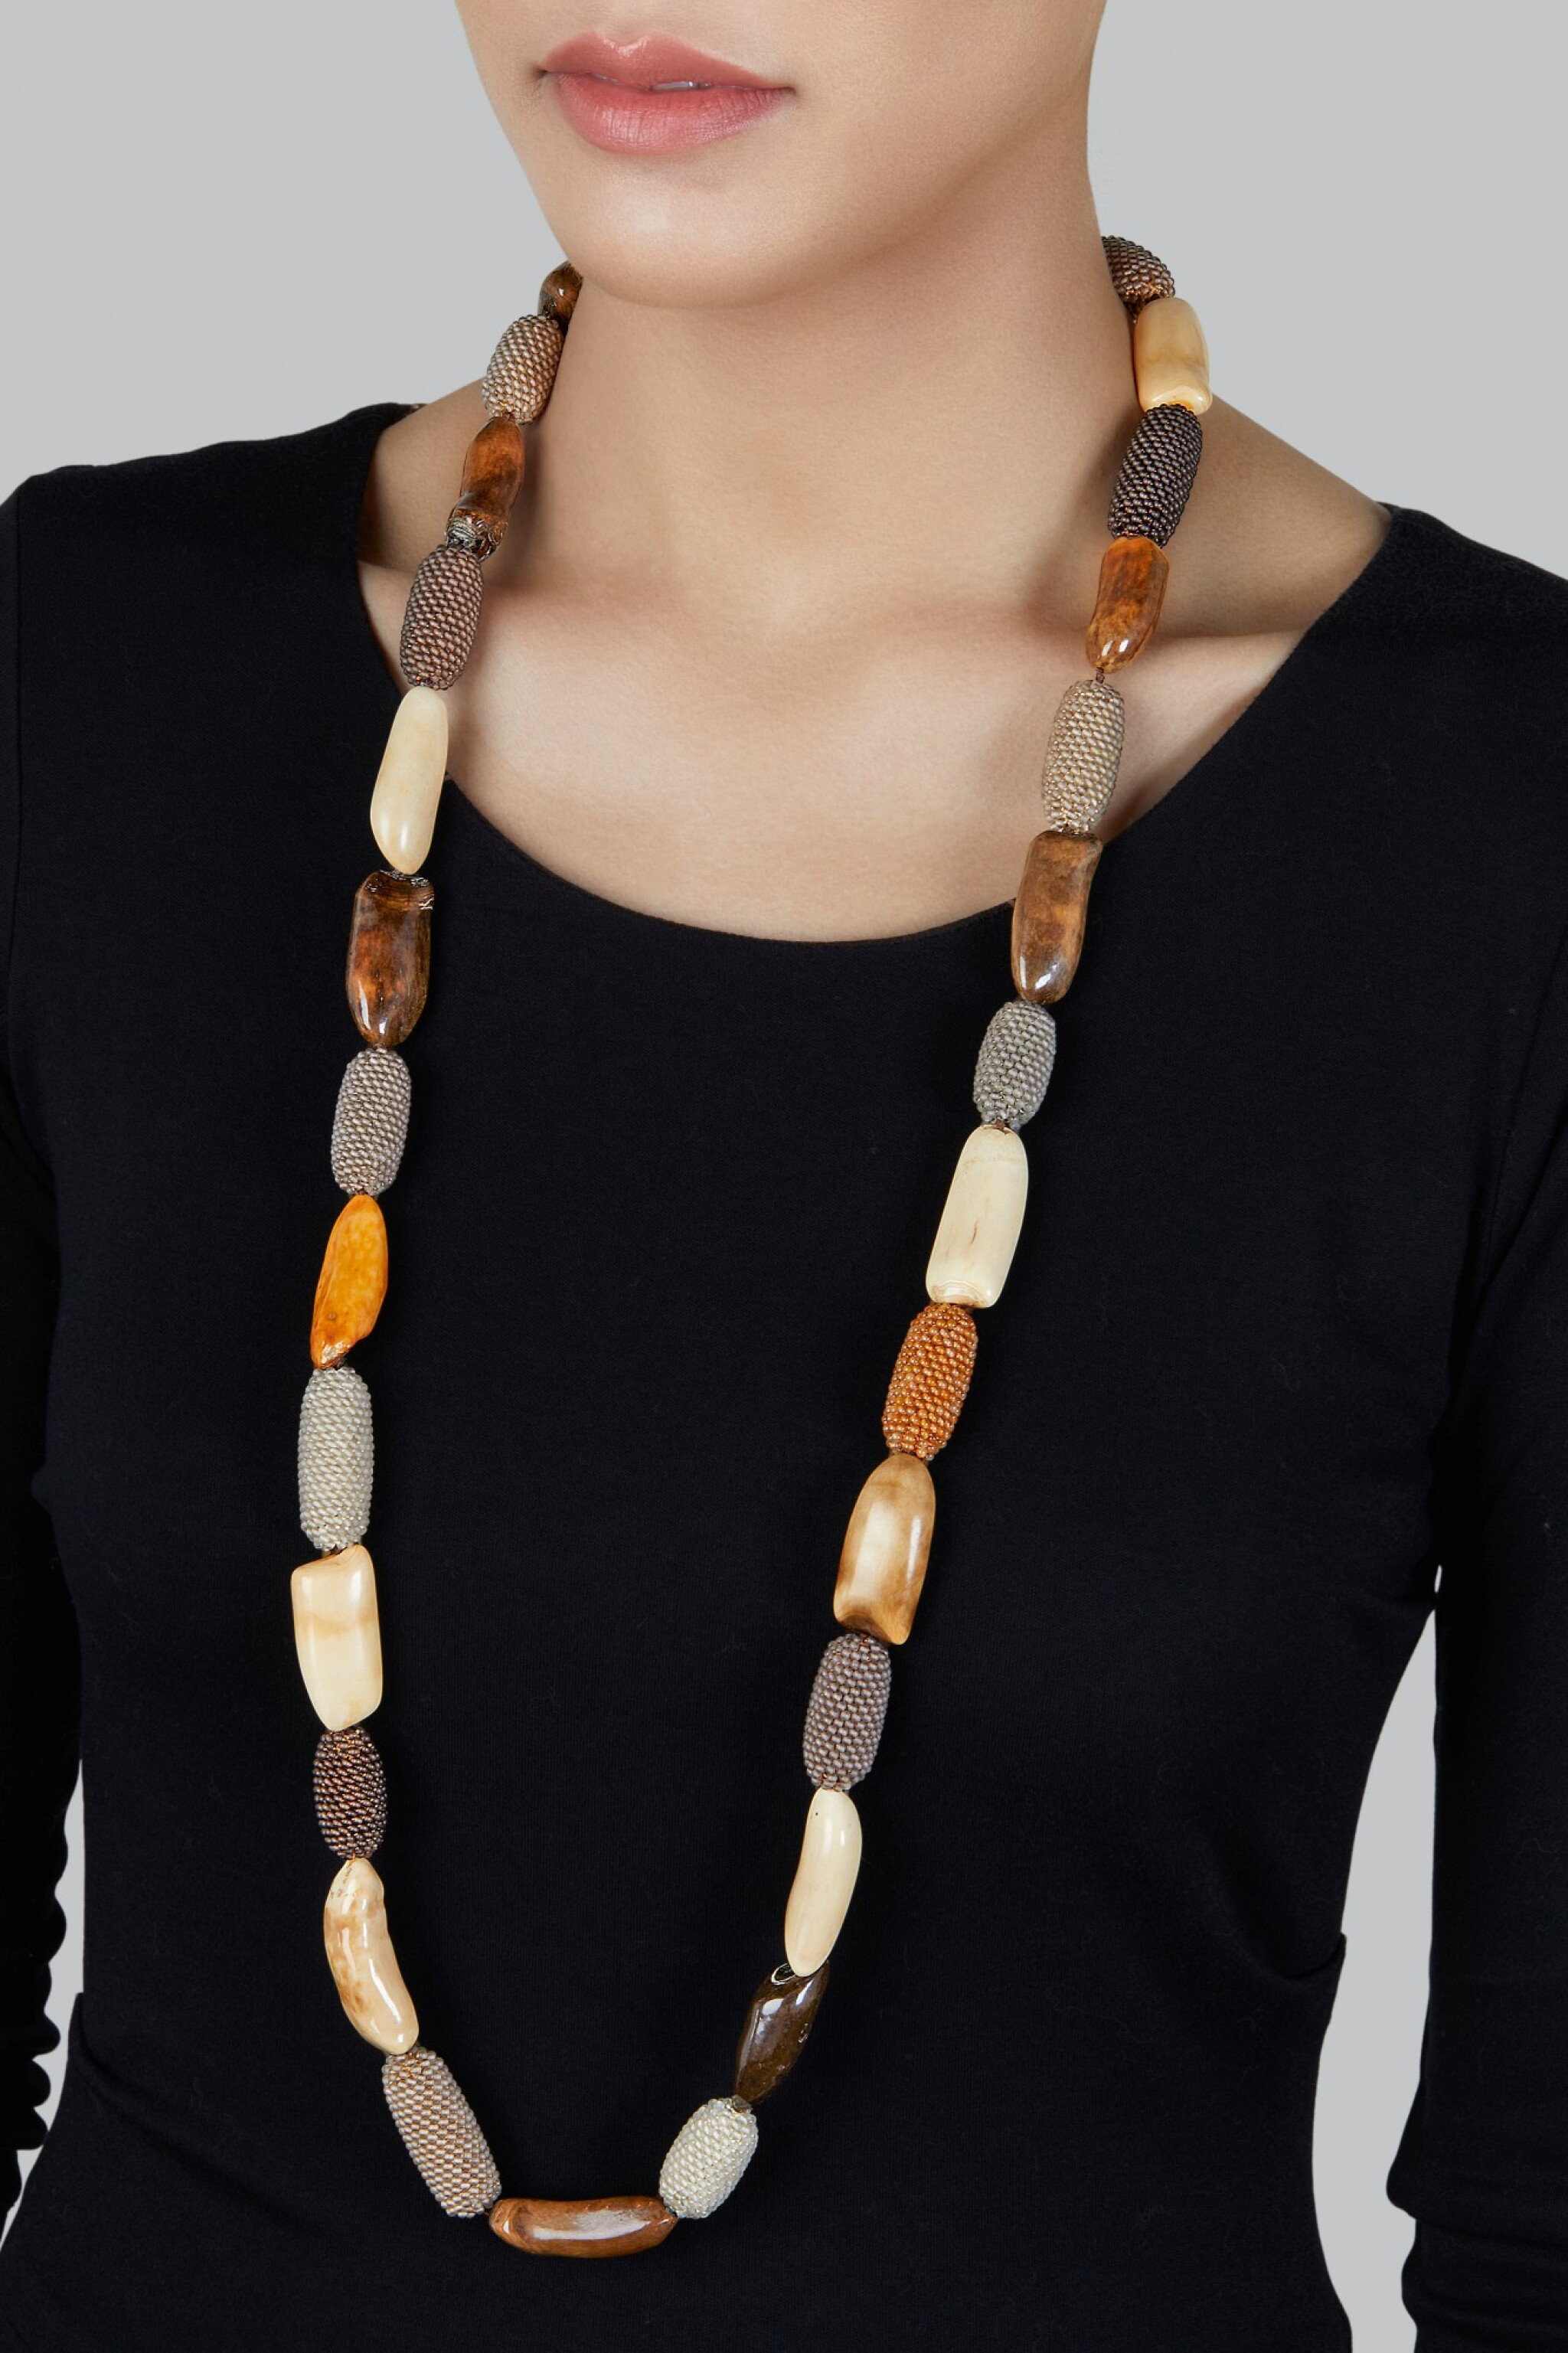 Antique Walrus Teeth Quartz And Carnelian Bead Necklace A Vision The Collection Of Michelle Smith Sotheby S